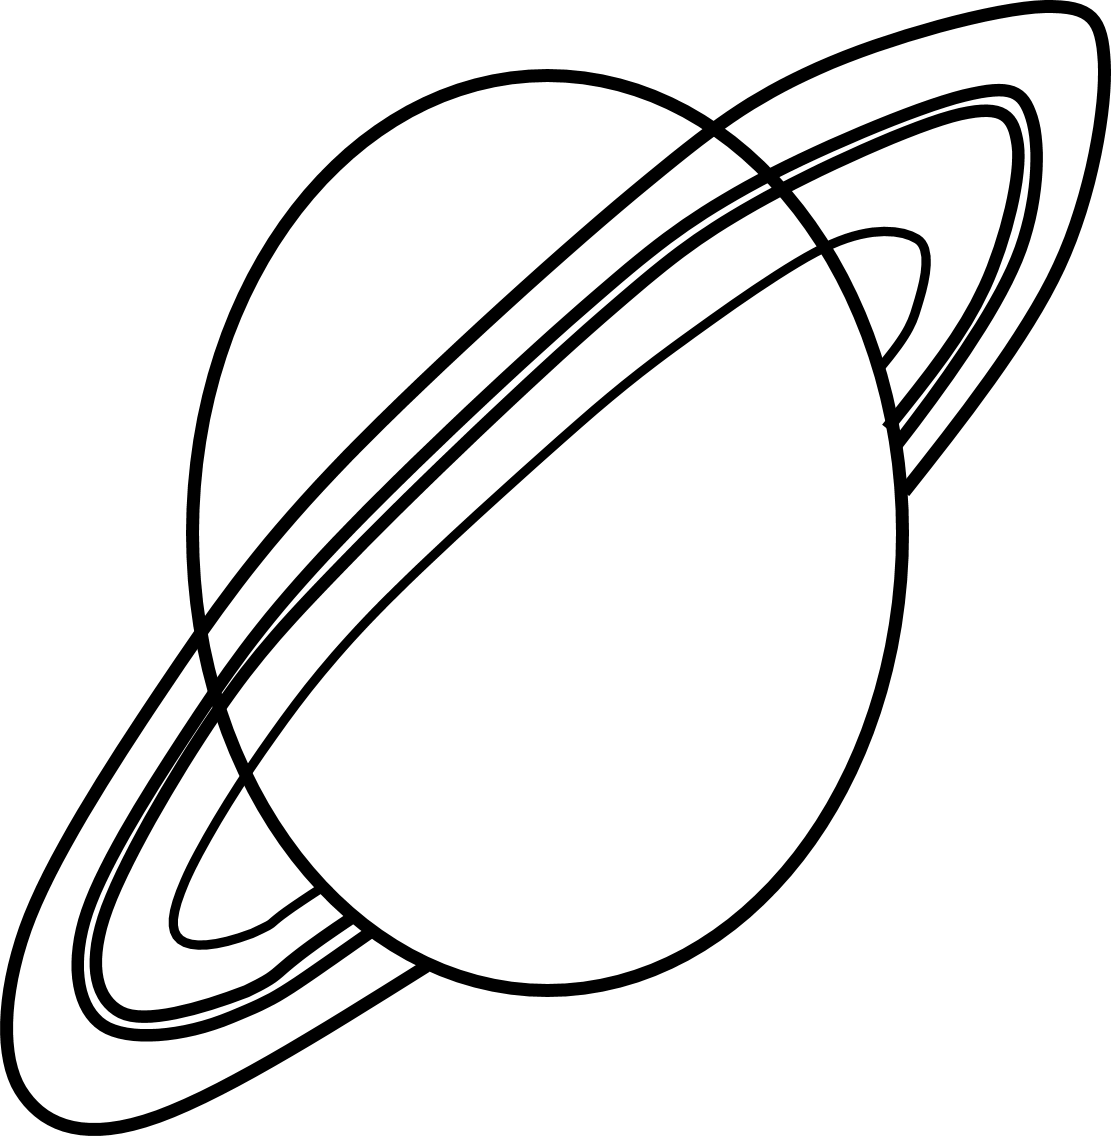 Planet Clipart Black And White